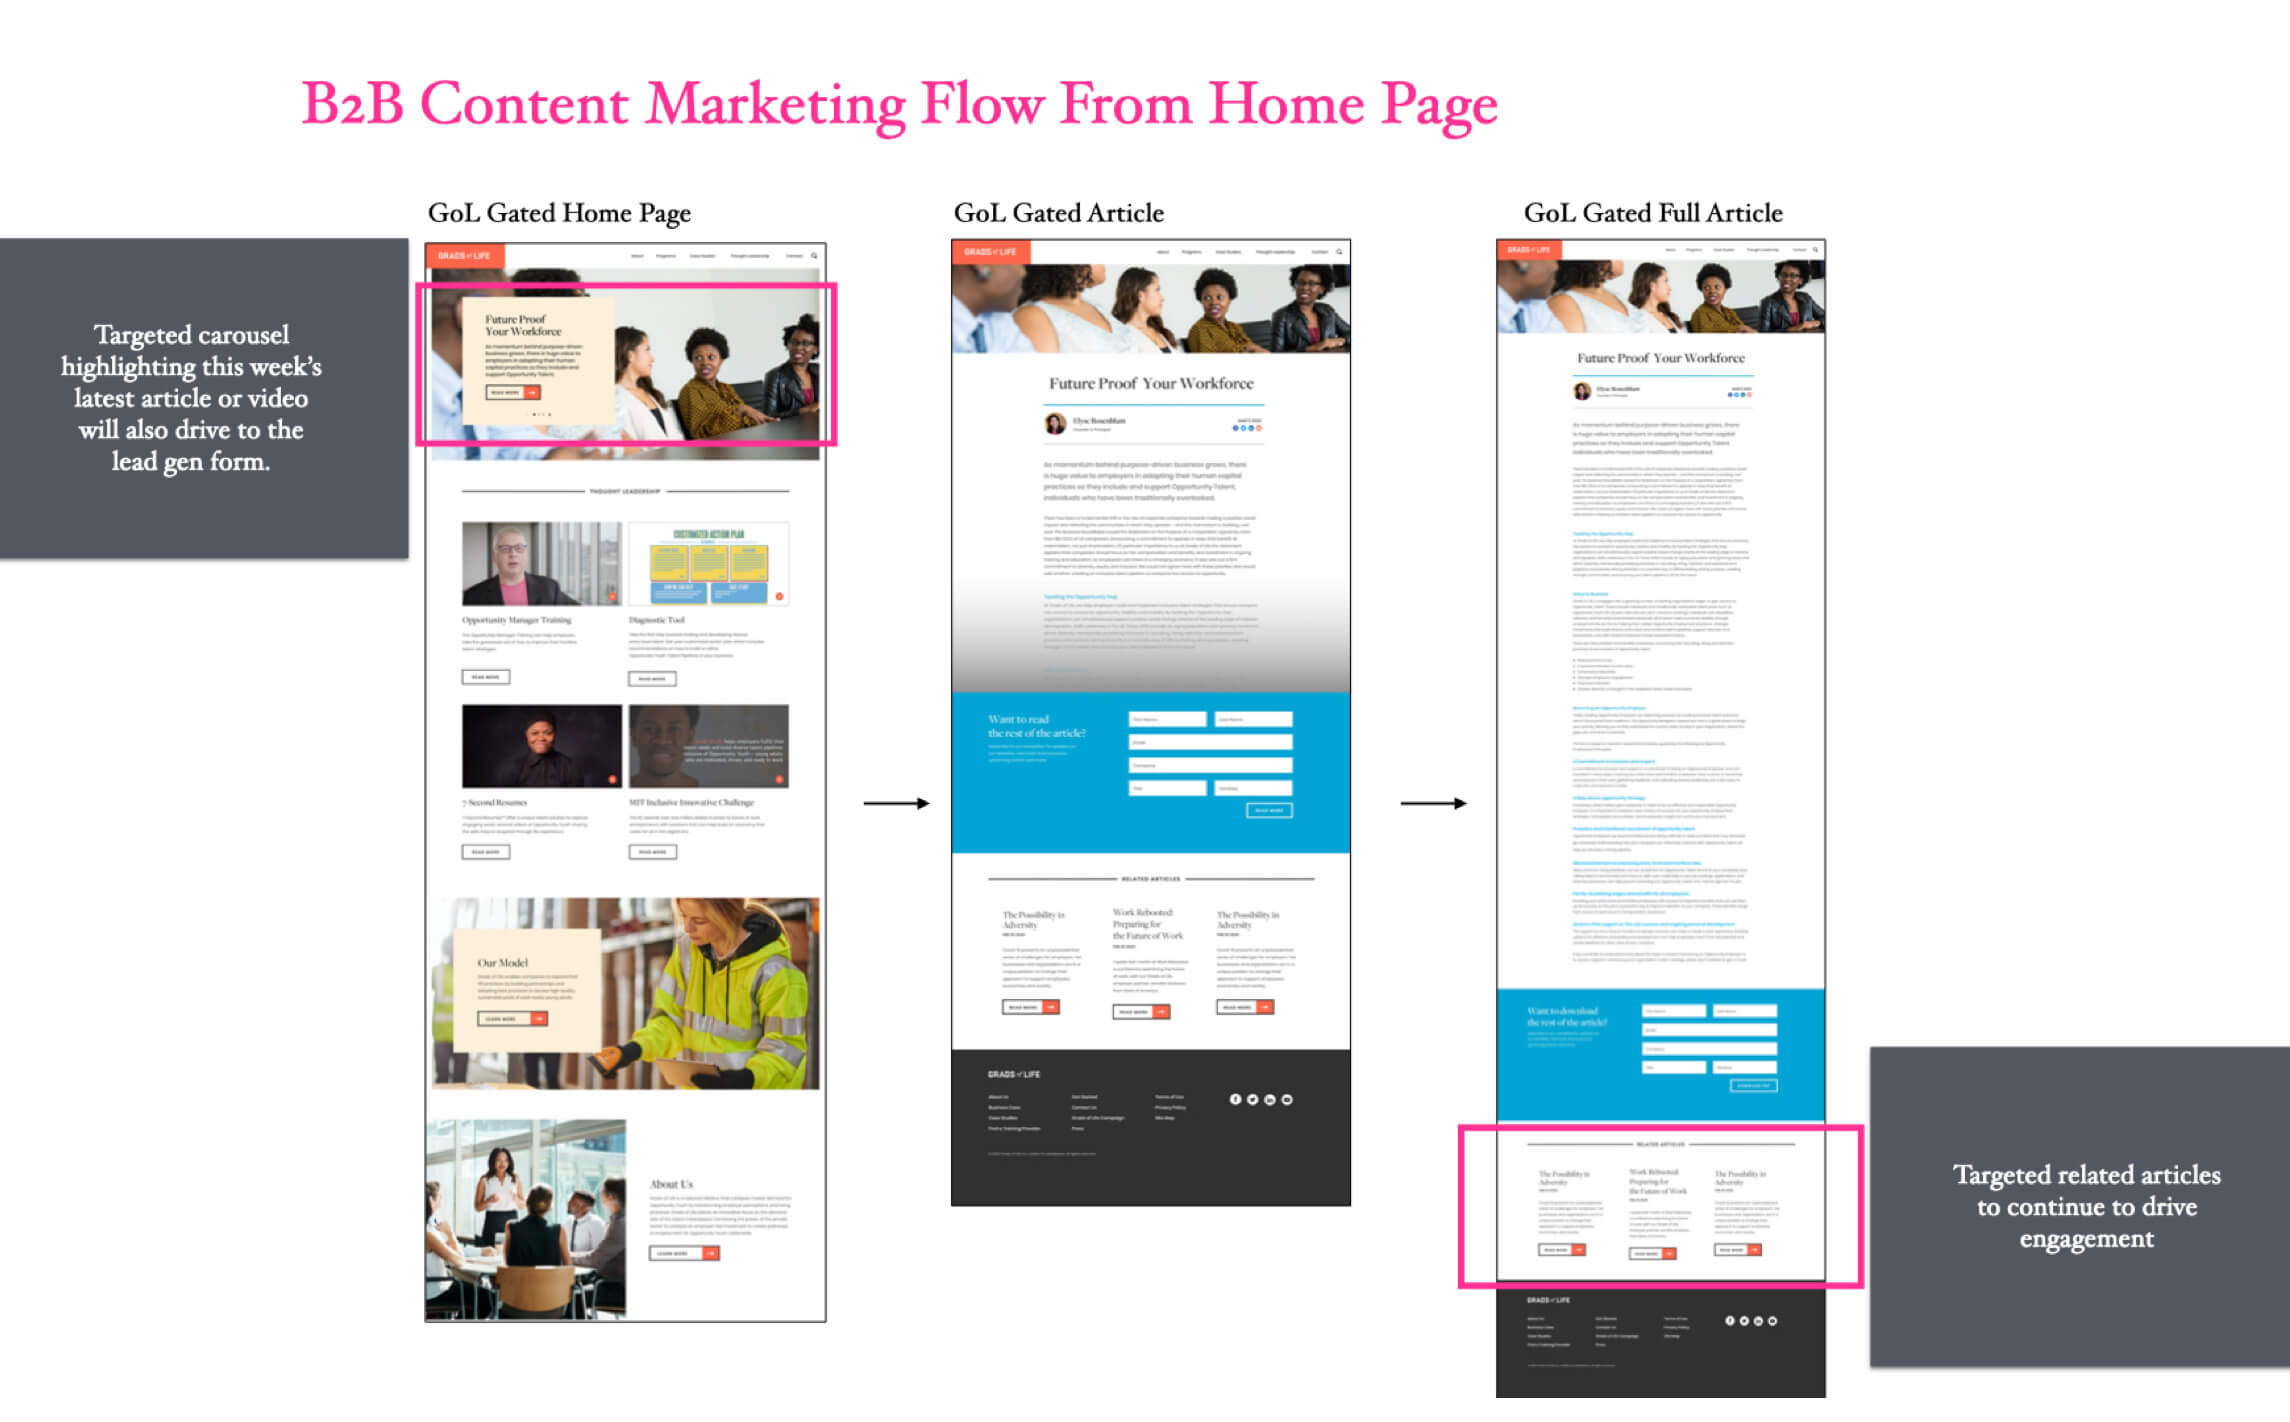 Grads of Life B2B Content Marketing Flow from Home Page